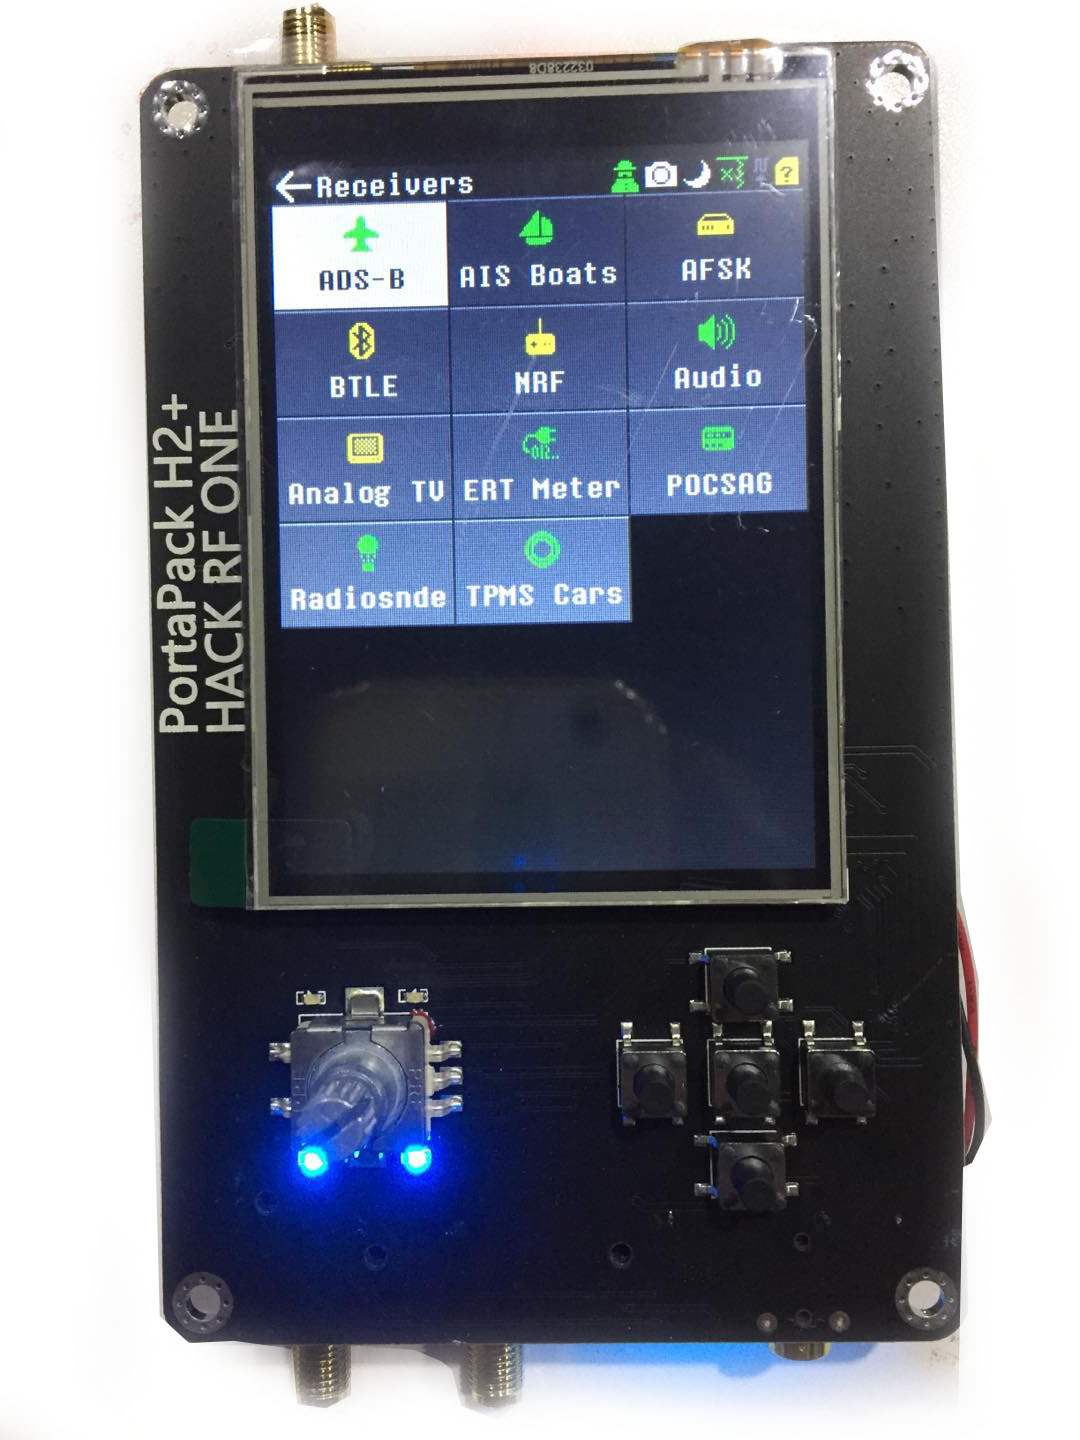 Portapack H2 extends the touch screen for hackrf one 3.2 inch portable SDR sender and receive